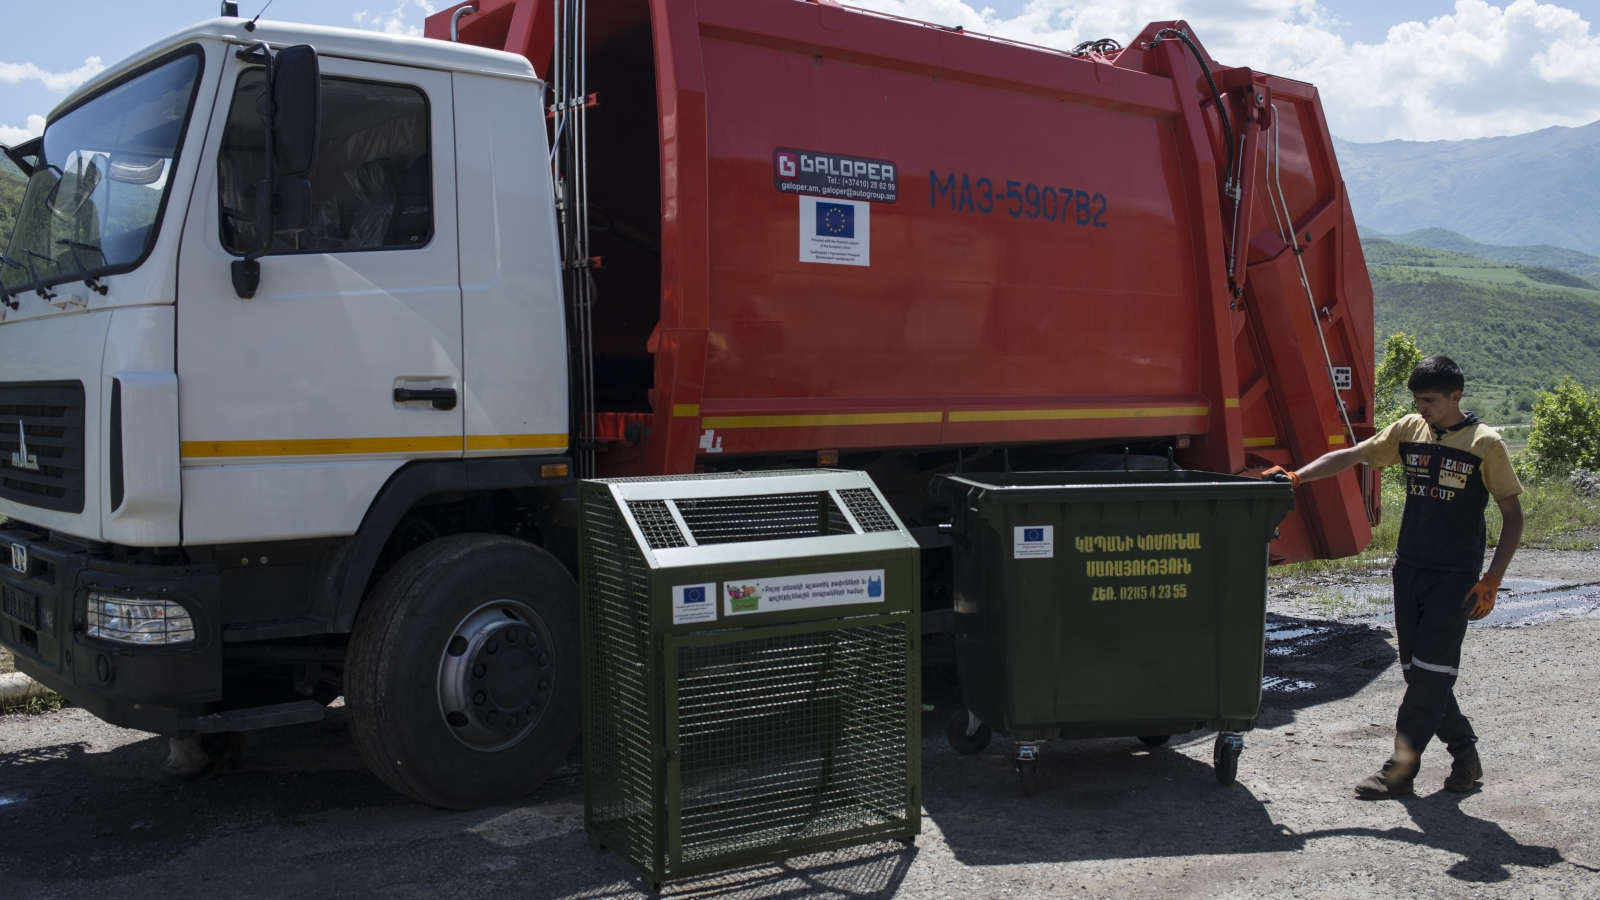 New trash bins and trash car for Kapan city, provided with the financial support of the European Union